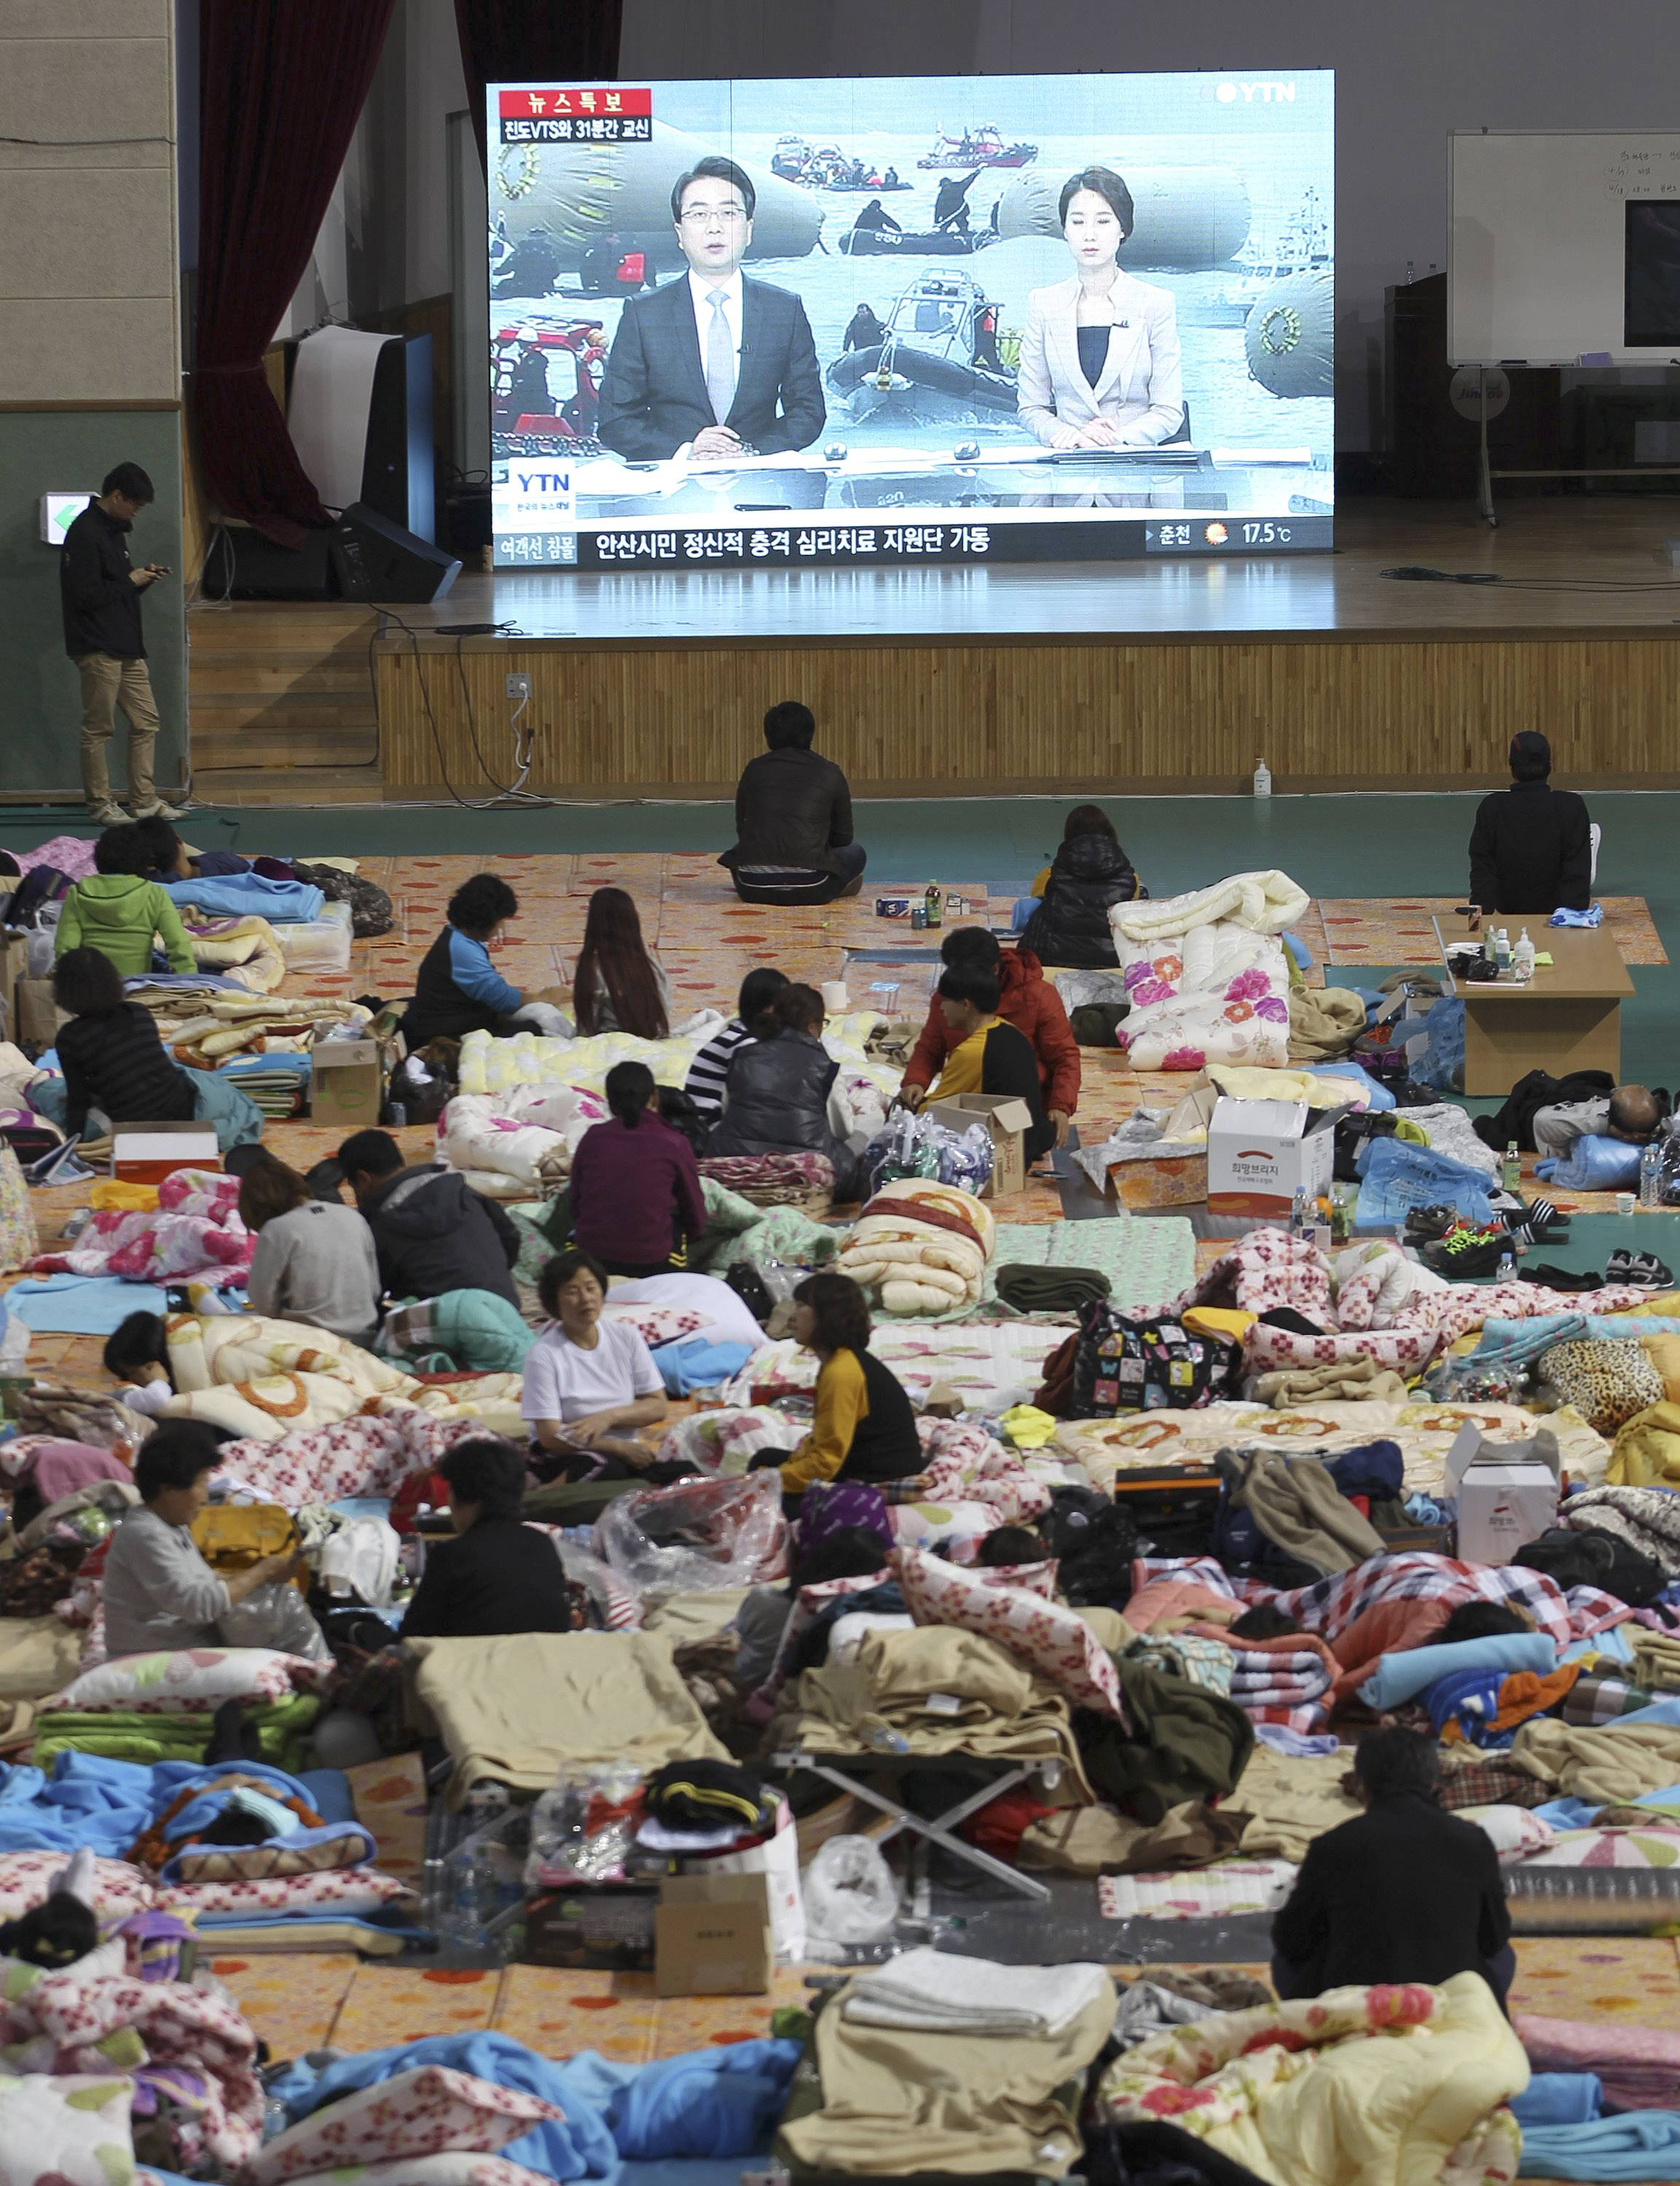 Relatives of missing passengers, waiting in a school gymnasium in Jindo, South Korea, watch a TV news program reporting government's rescue operations Sunday. After more than three days of frustration and failure, divers on Sunday finally found a way into the submerged ferry.